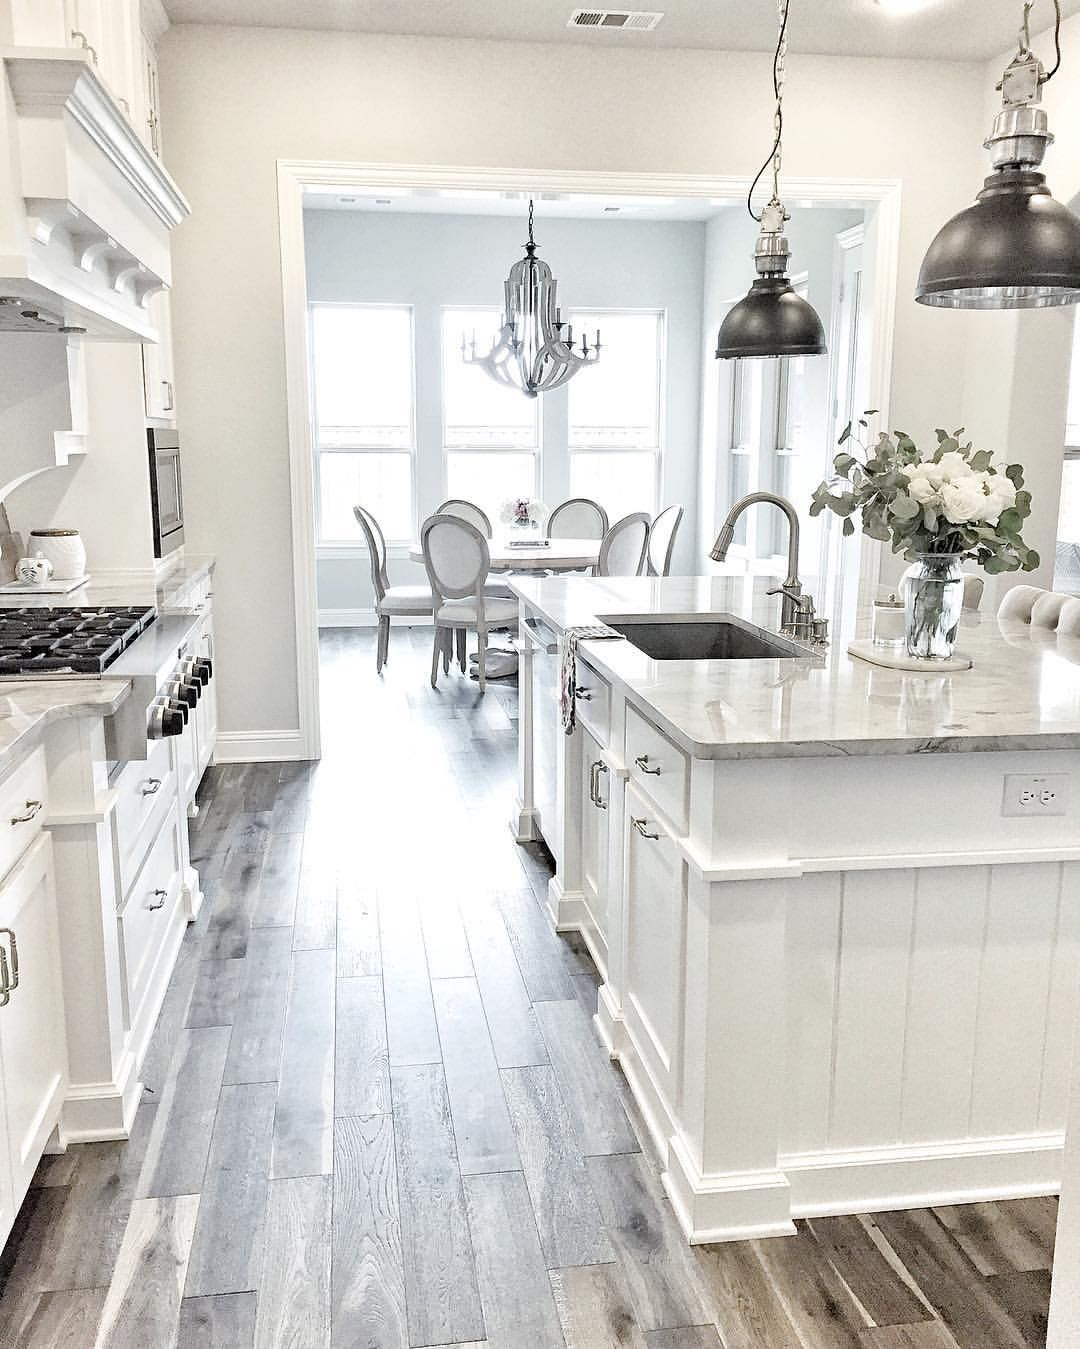 Pin by emily h on house pinterest kitchen kitchen design and